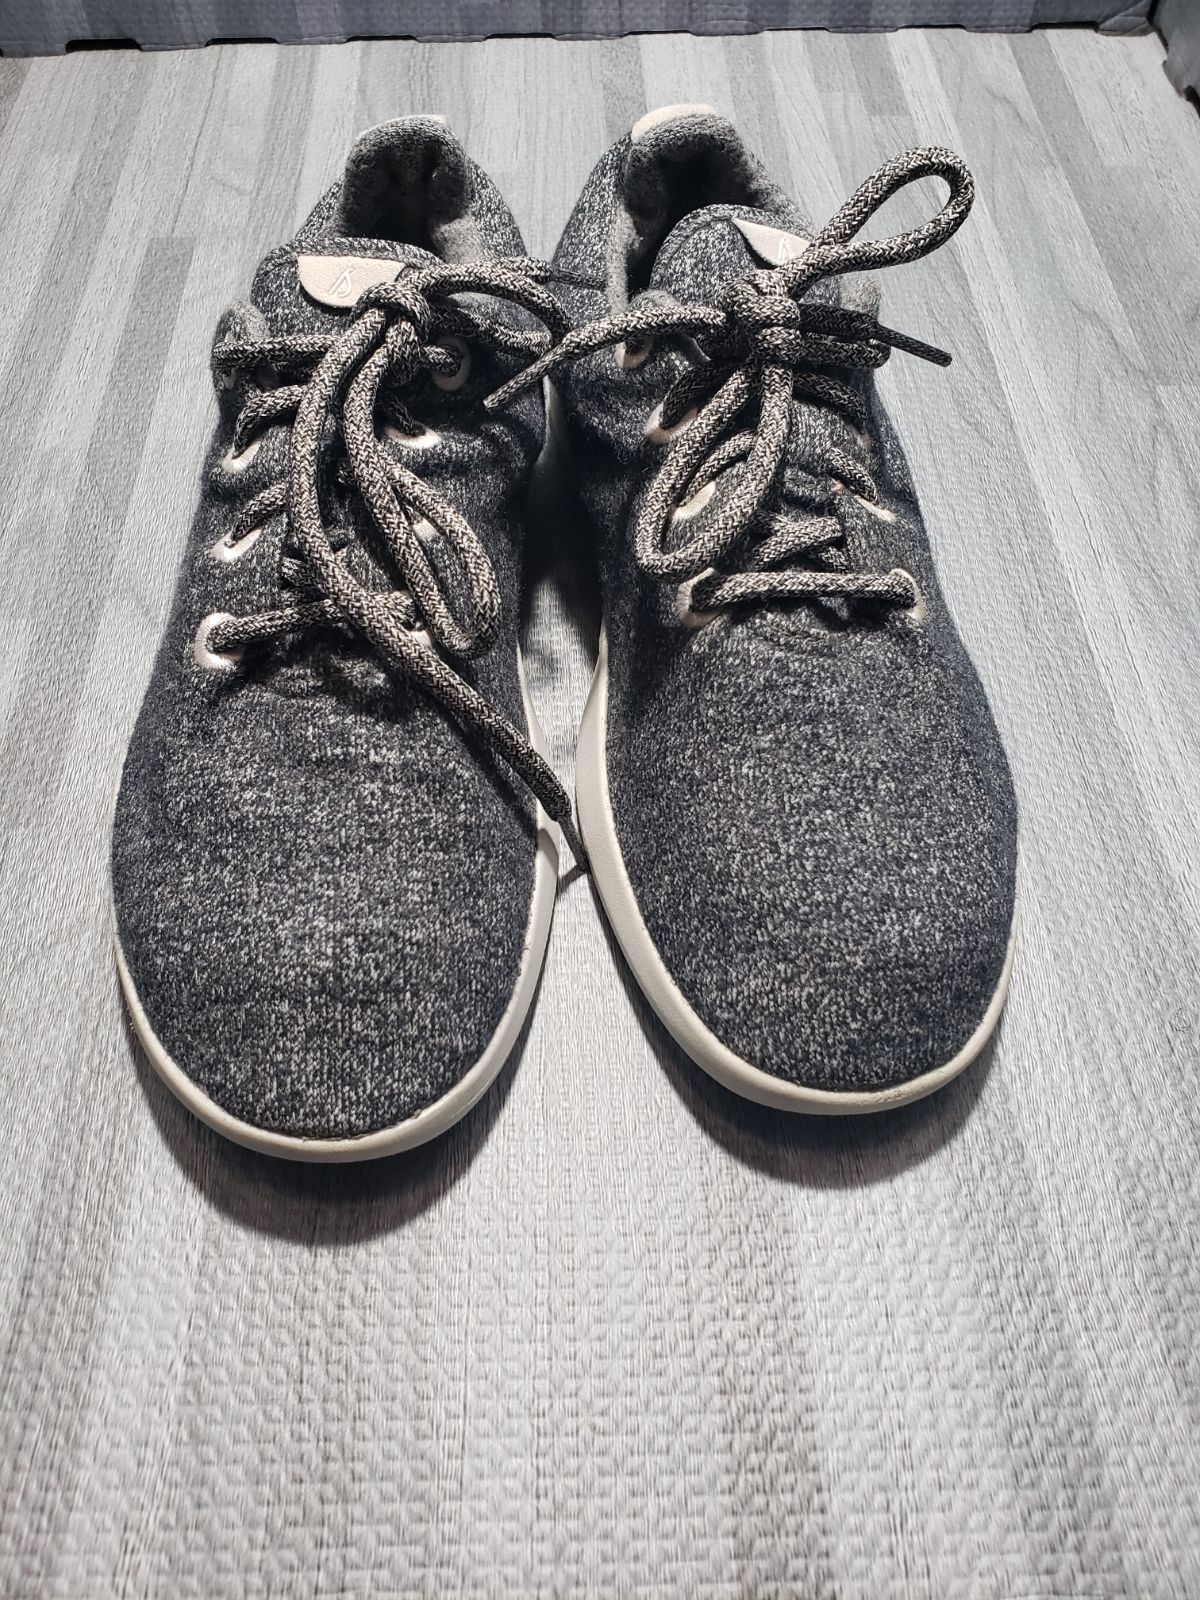 Allbirds women wool shoes